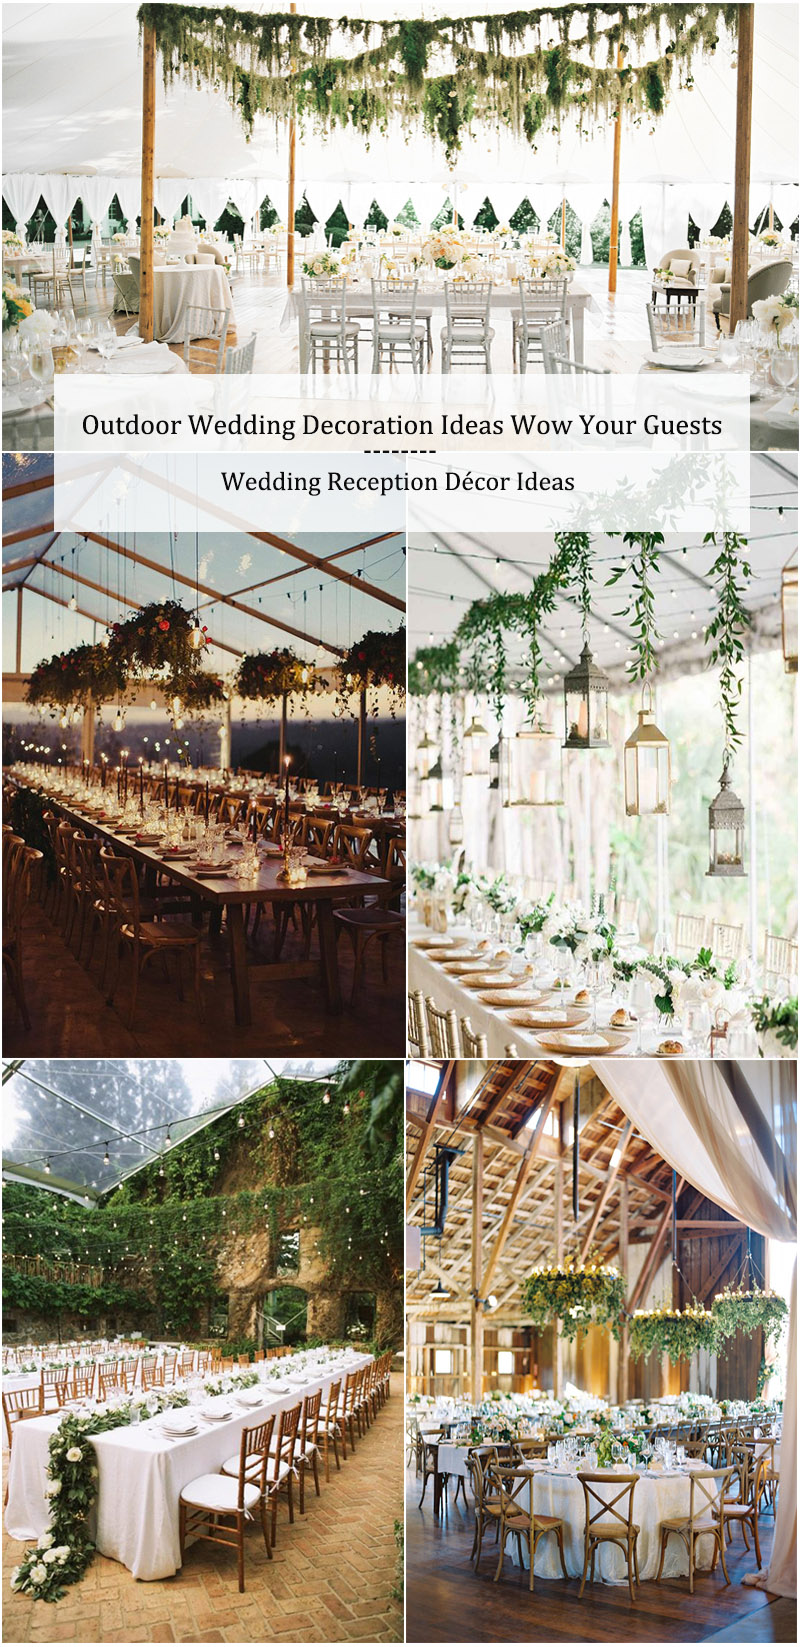 Outdoor Wedding Decoration Ideas-Wedding Reception Ideas